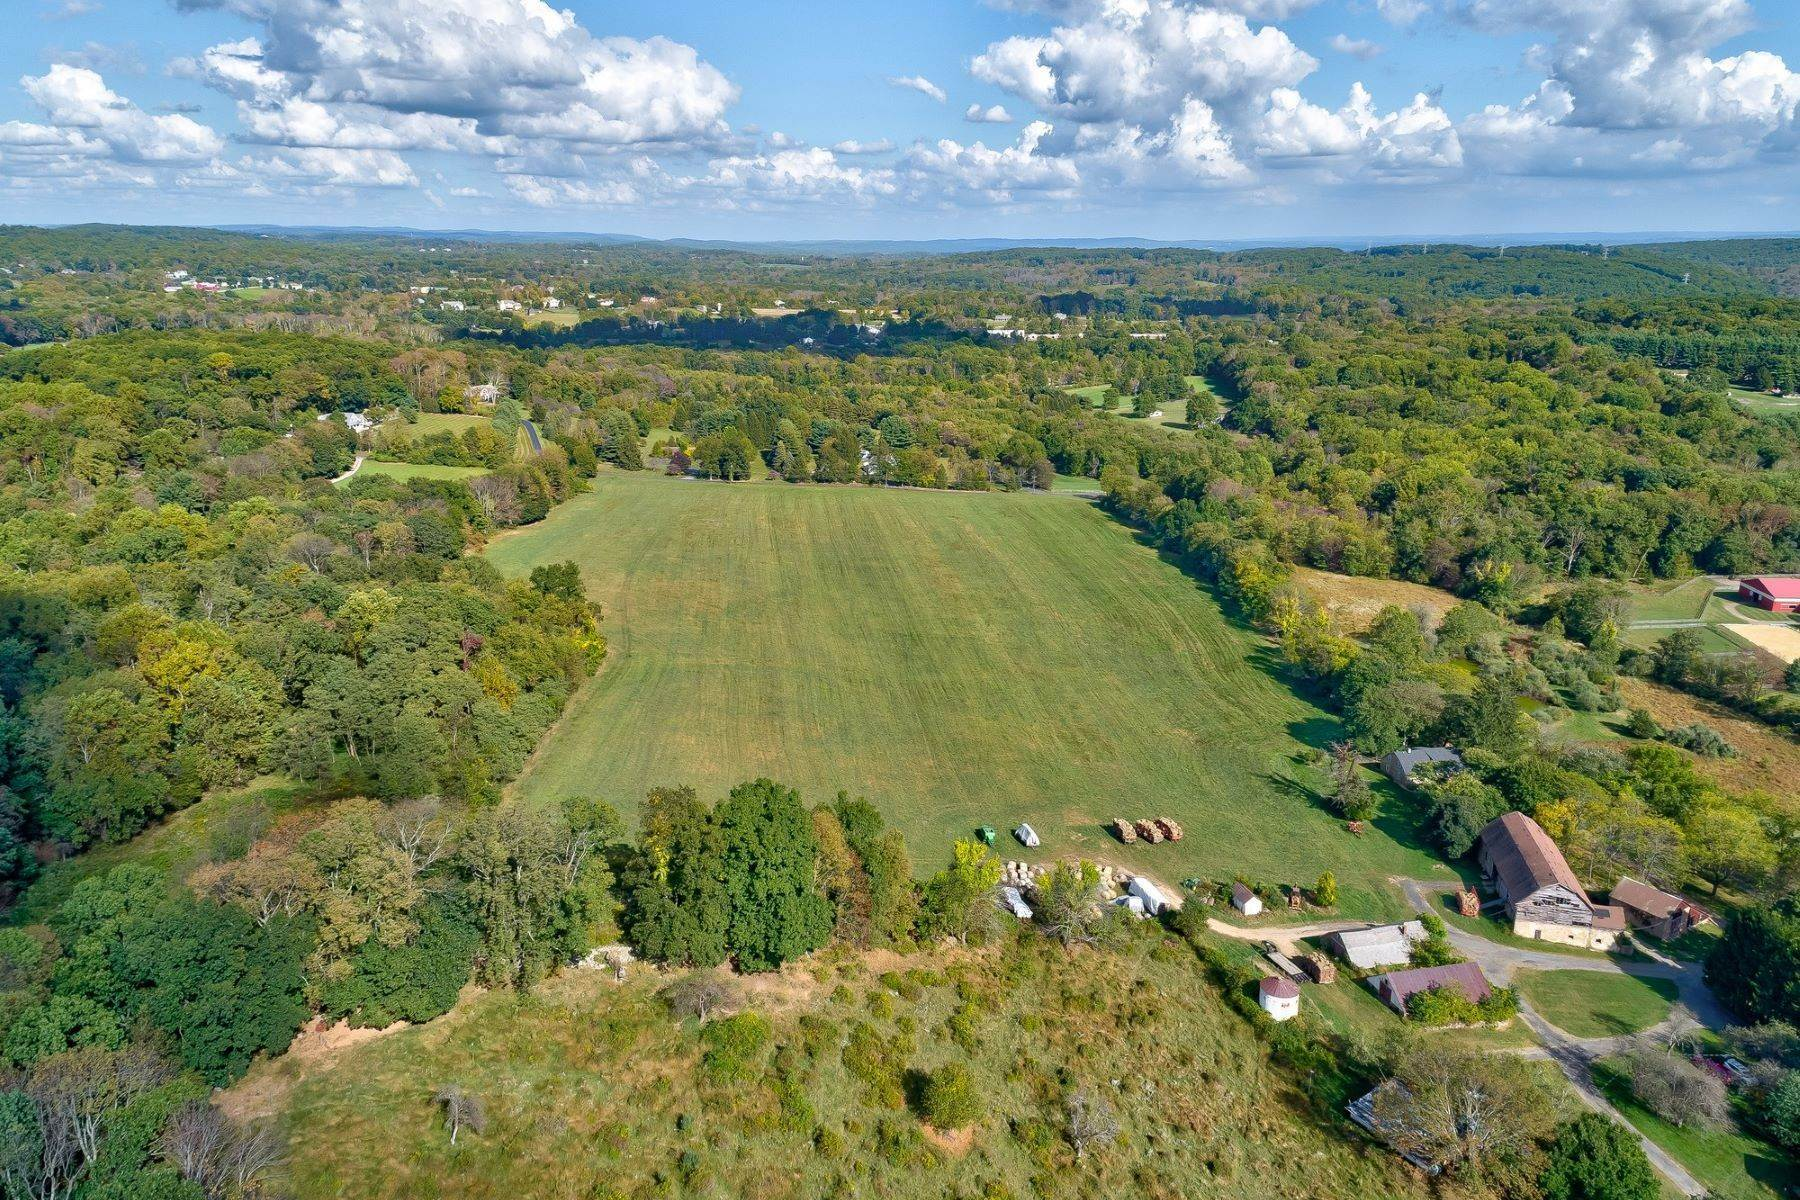 Single Family Homes for Sale at Historic 1726 Farm 26 Sutton Road Tewksbury Township, New Jersey 07830 United States